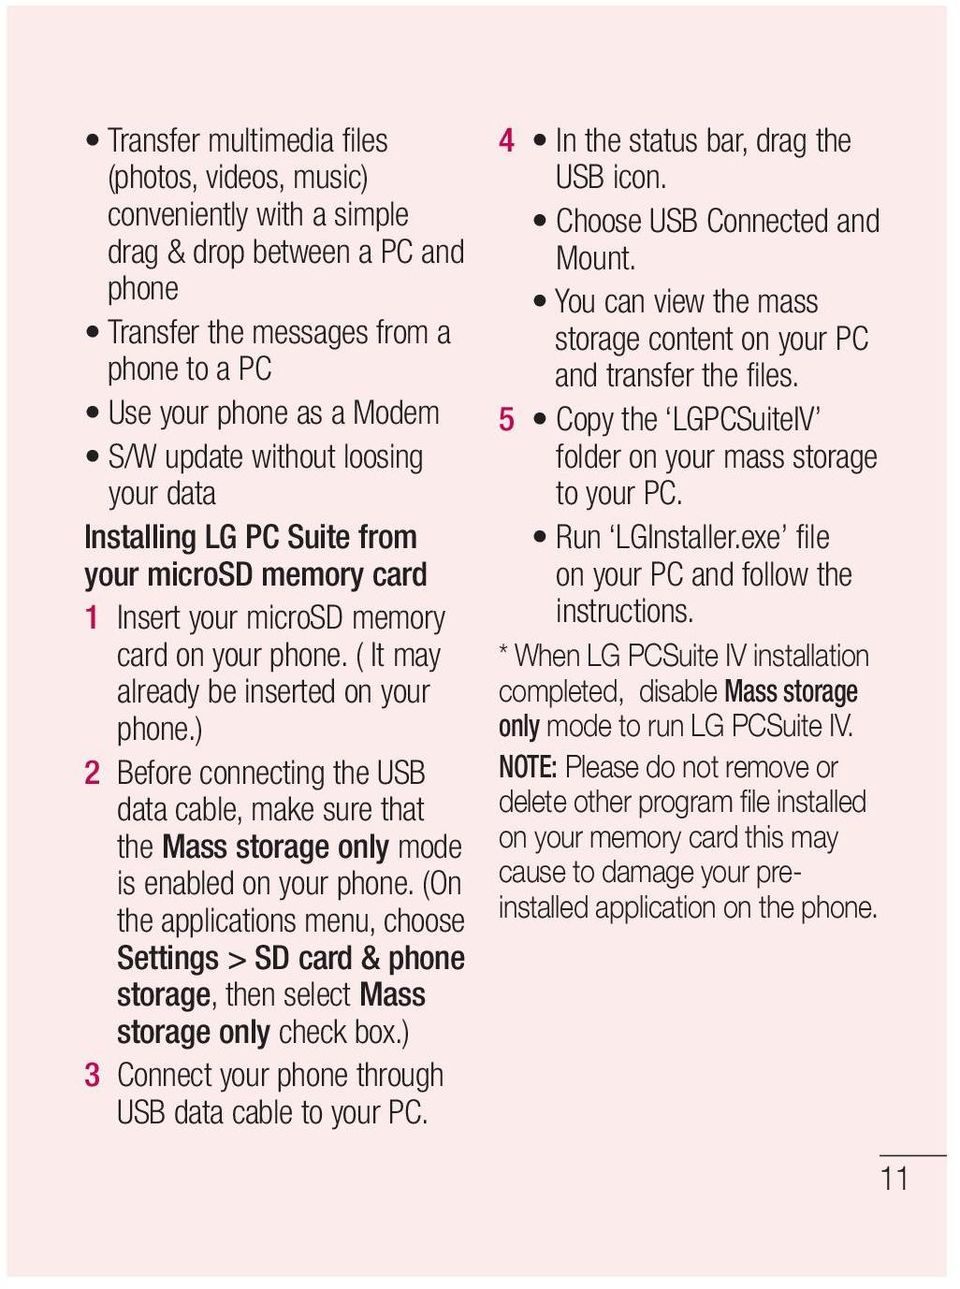 ) 2 Before connecting the USB data cable, make sure that the Mass storage only mode is enabled on your phone.